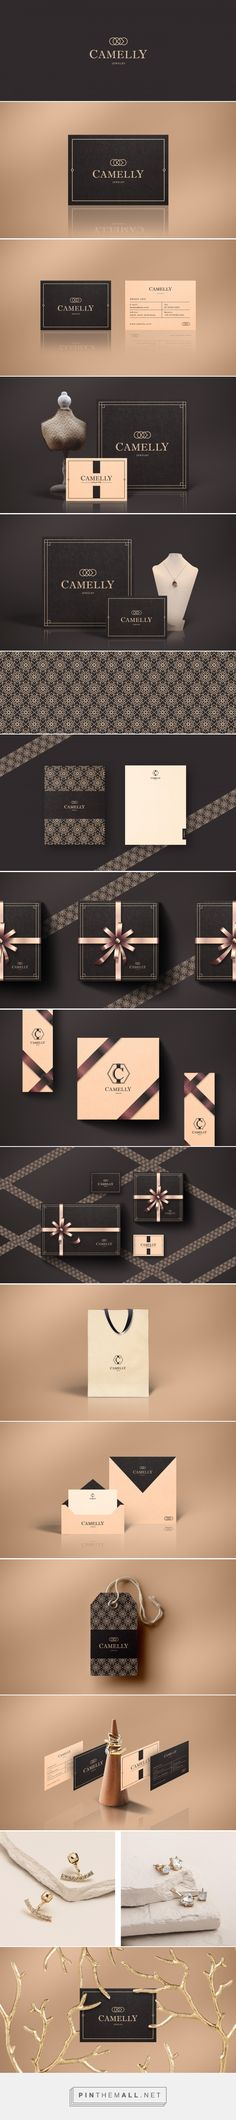 design logo luxury design design studio design marketing design dosei design porter of luxury design luxury design Design Logo, Web Design Agency, Brand Identity Design, Branding Design, Graphic Design, Branding Agency, Luxury Branding, Logo Luxury, Jewelry Packaging